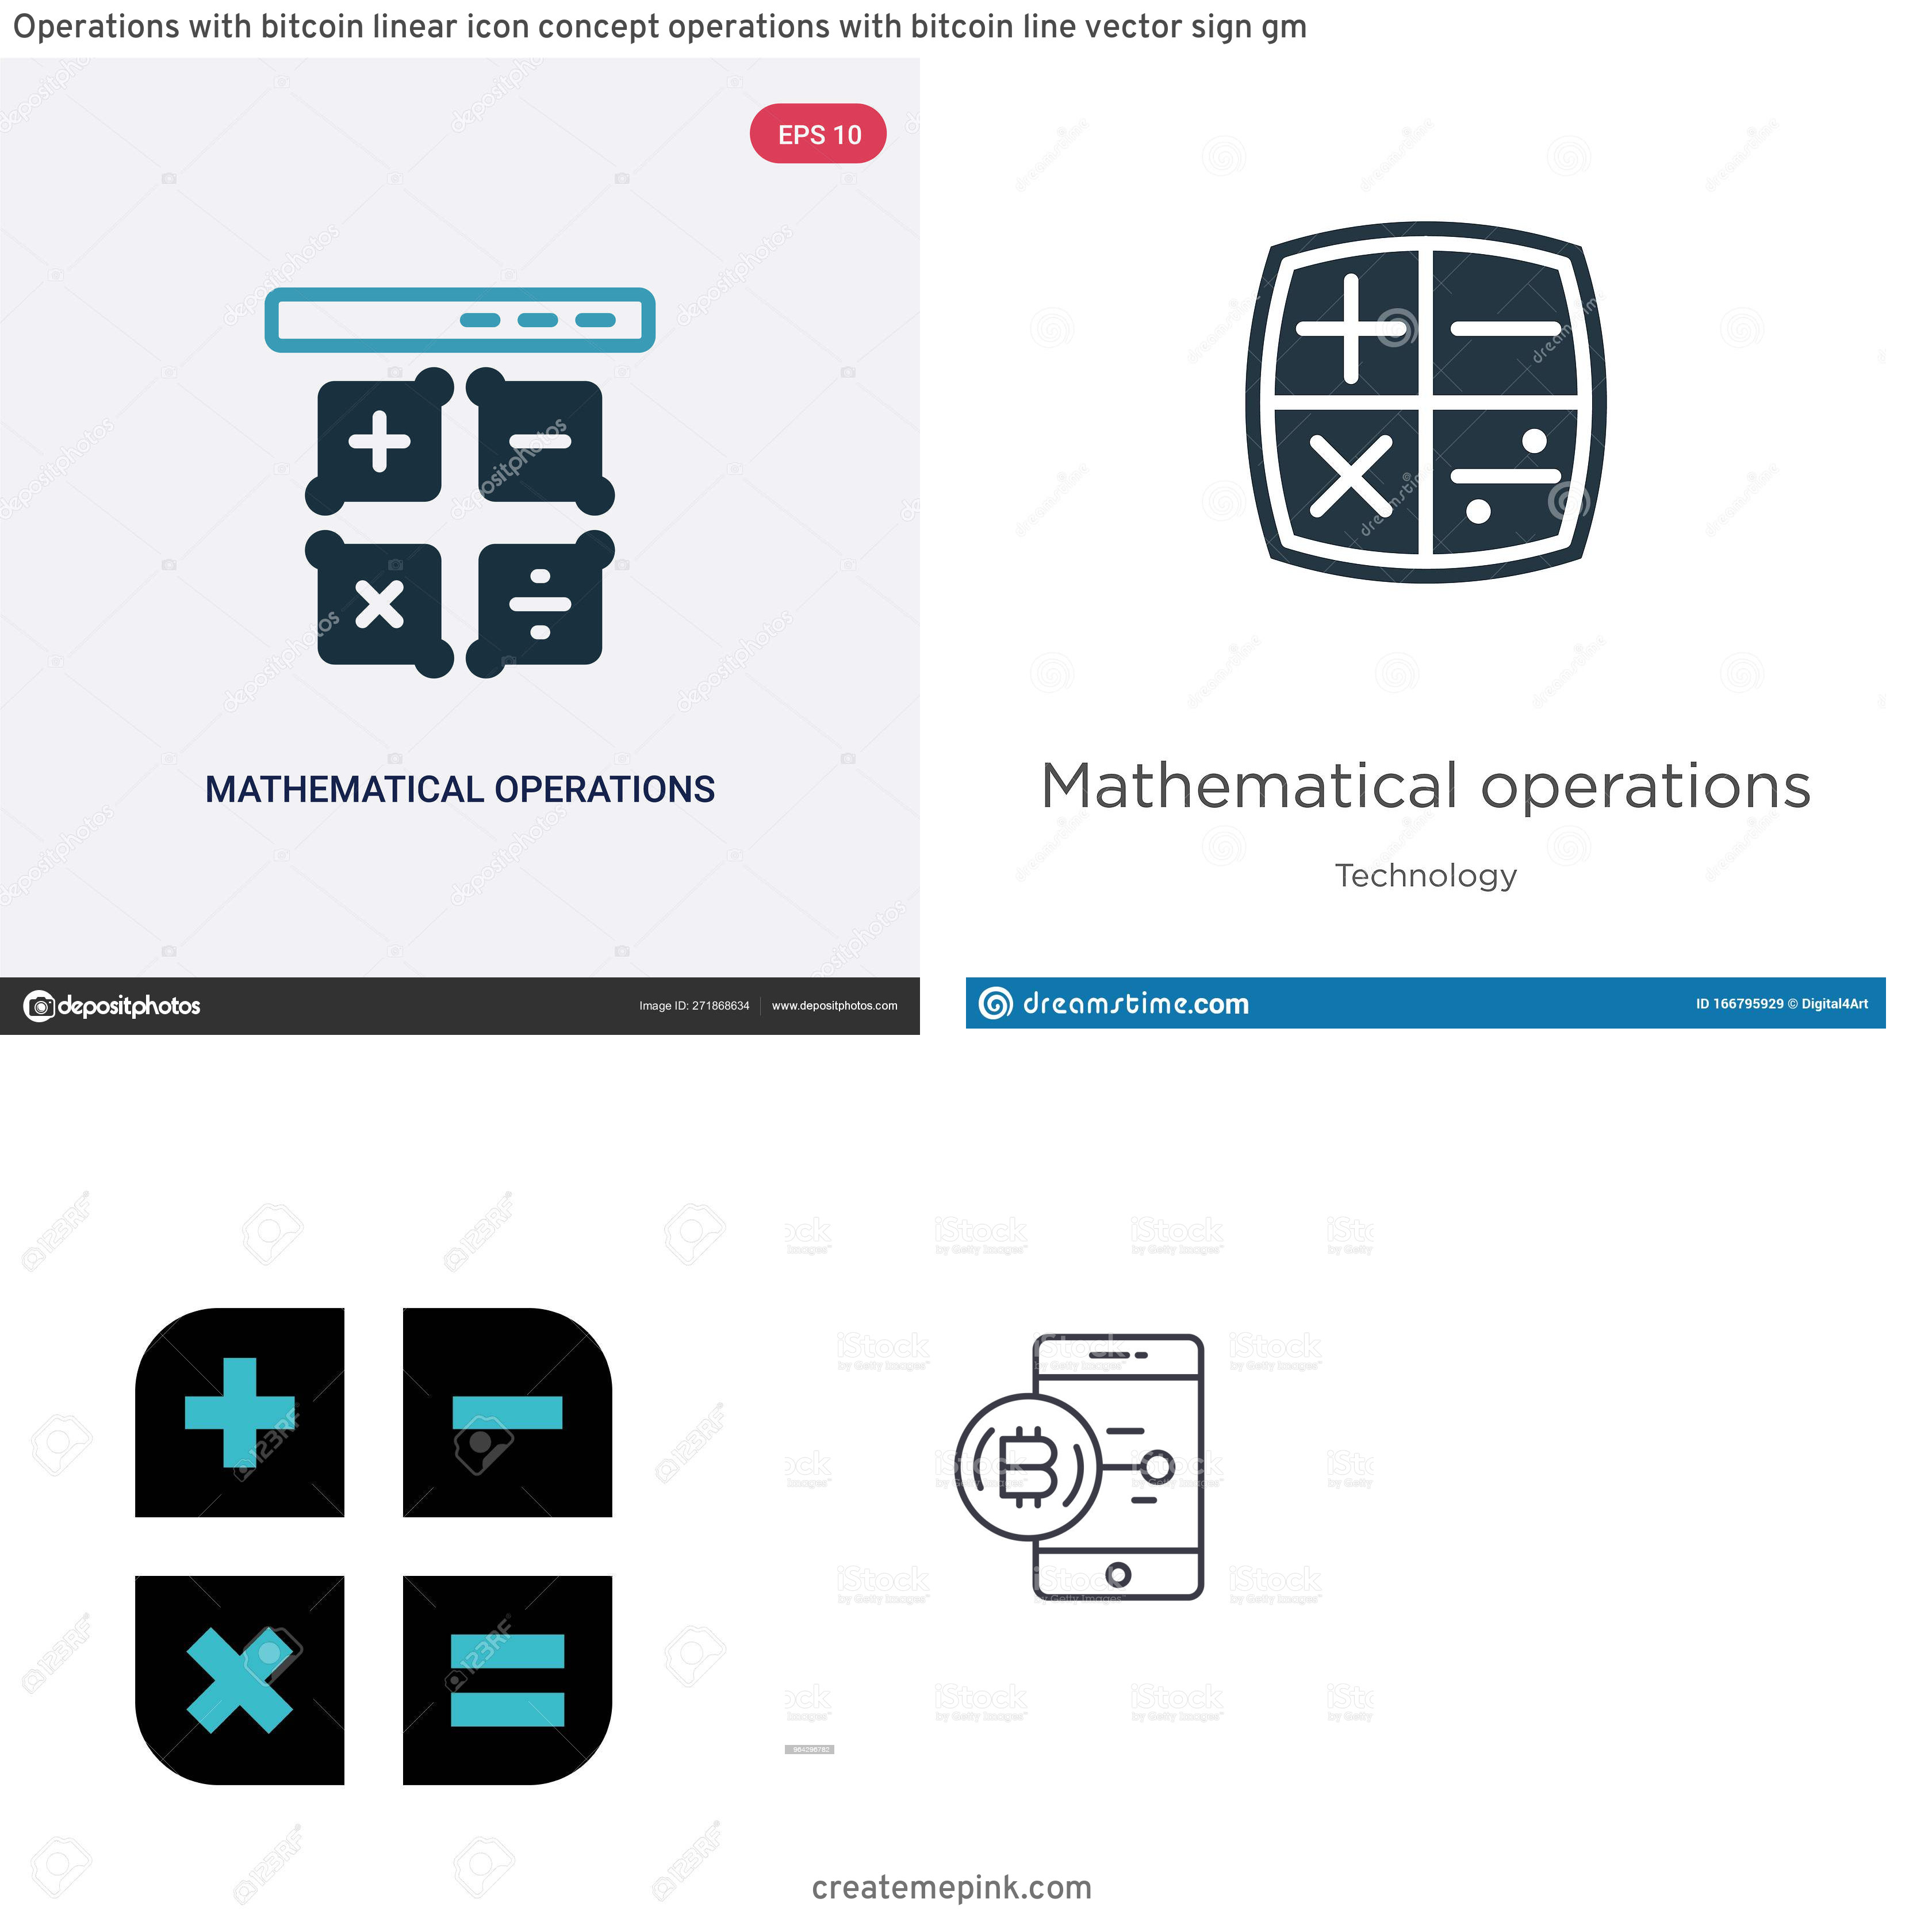 Operations Icon Vector: Operations With Bitcoin Linear Icon Concept Operations With Bitcoin Line Vector Sign Gm